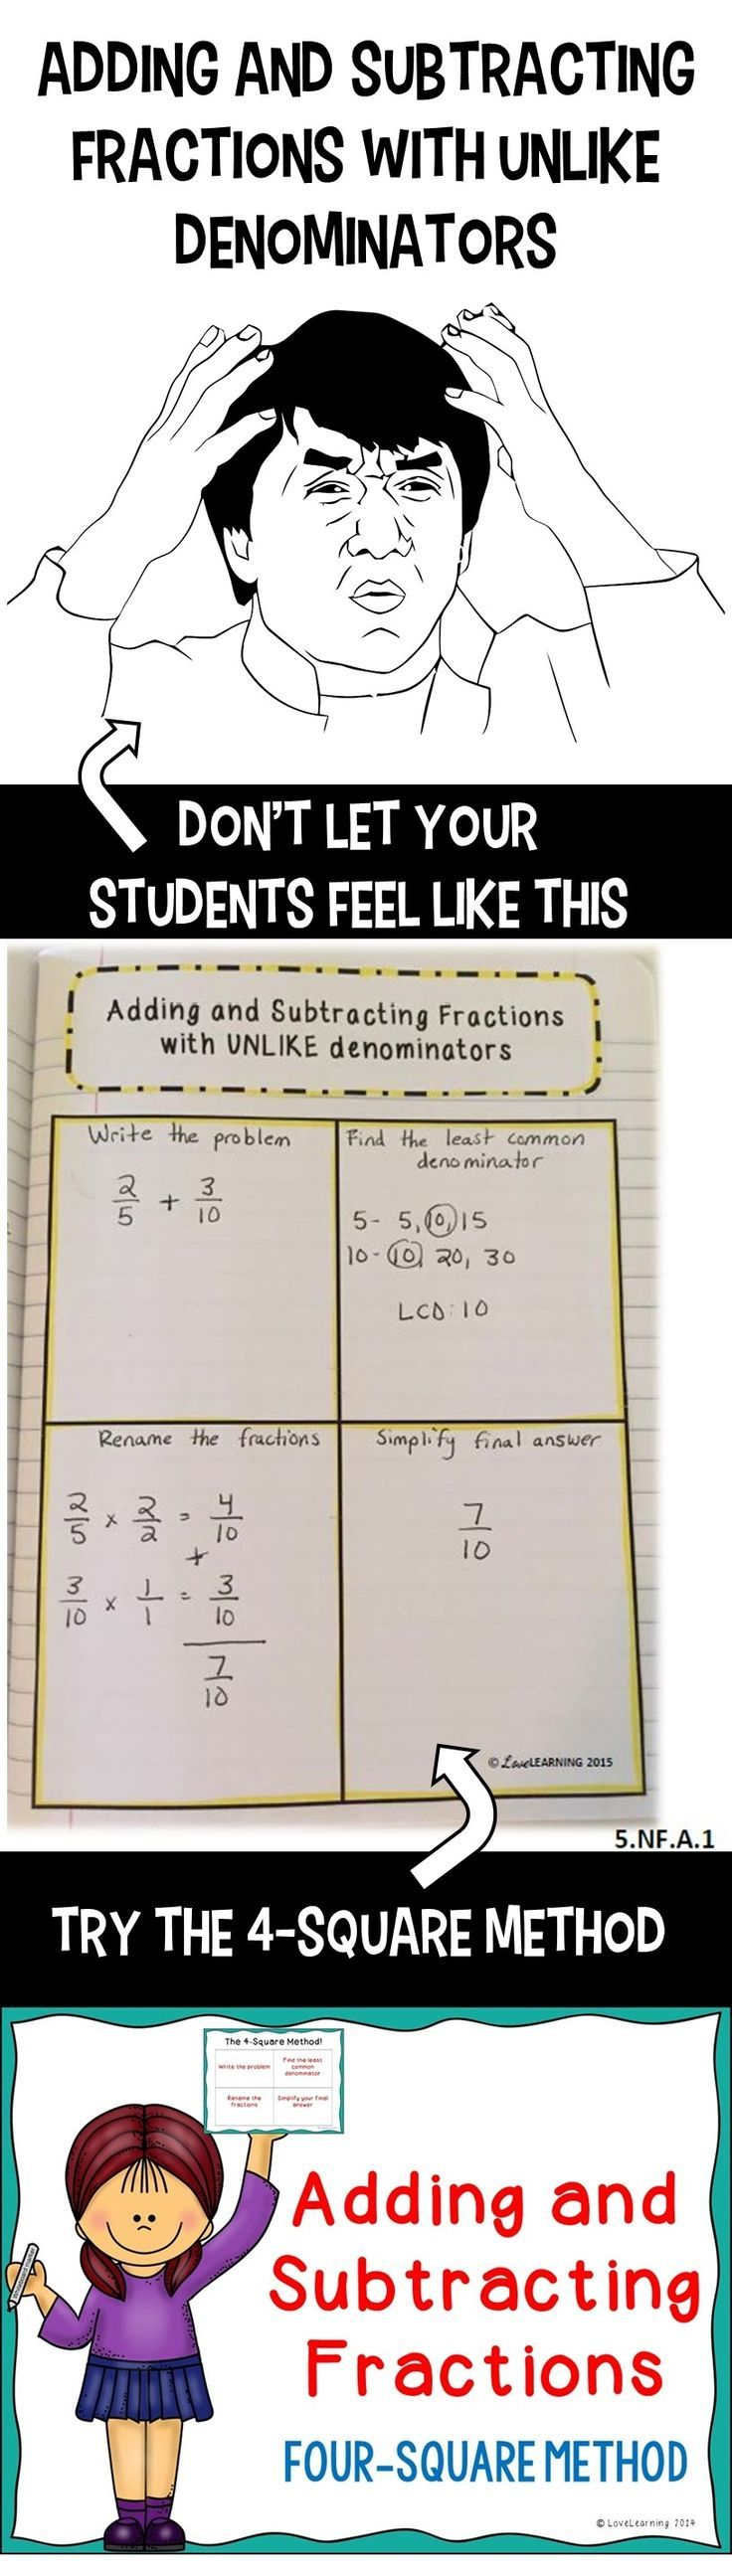 Adding and subtracting fractions using the foursquare